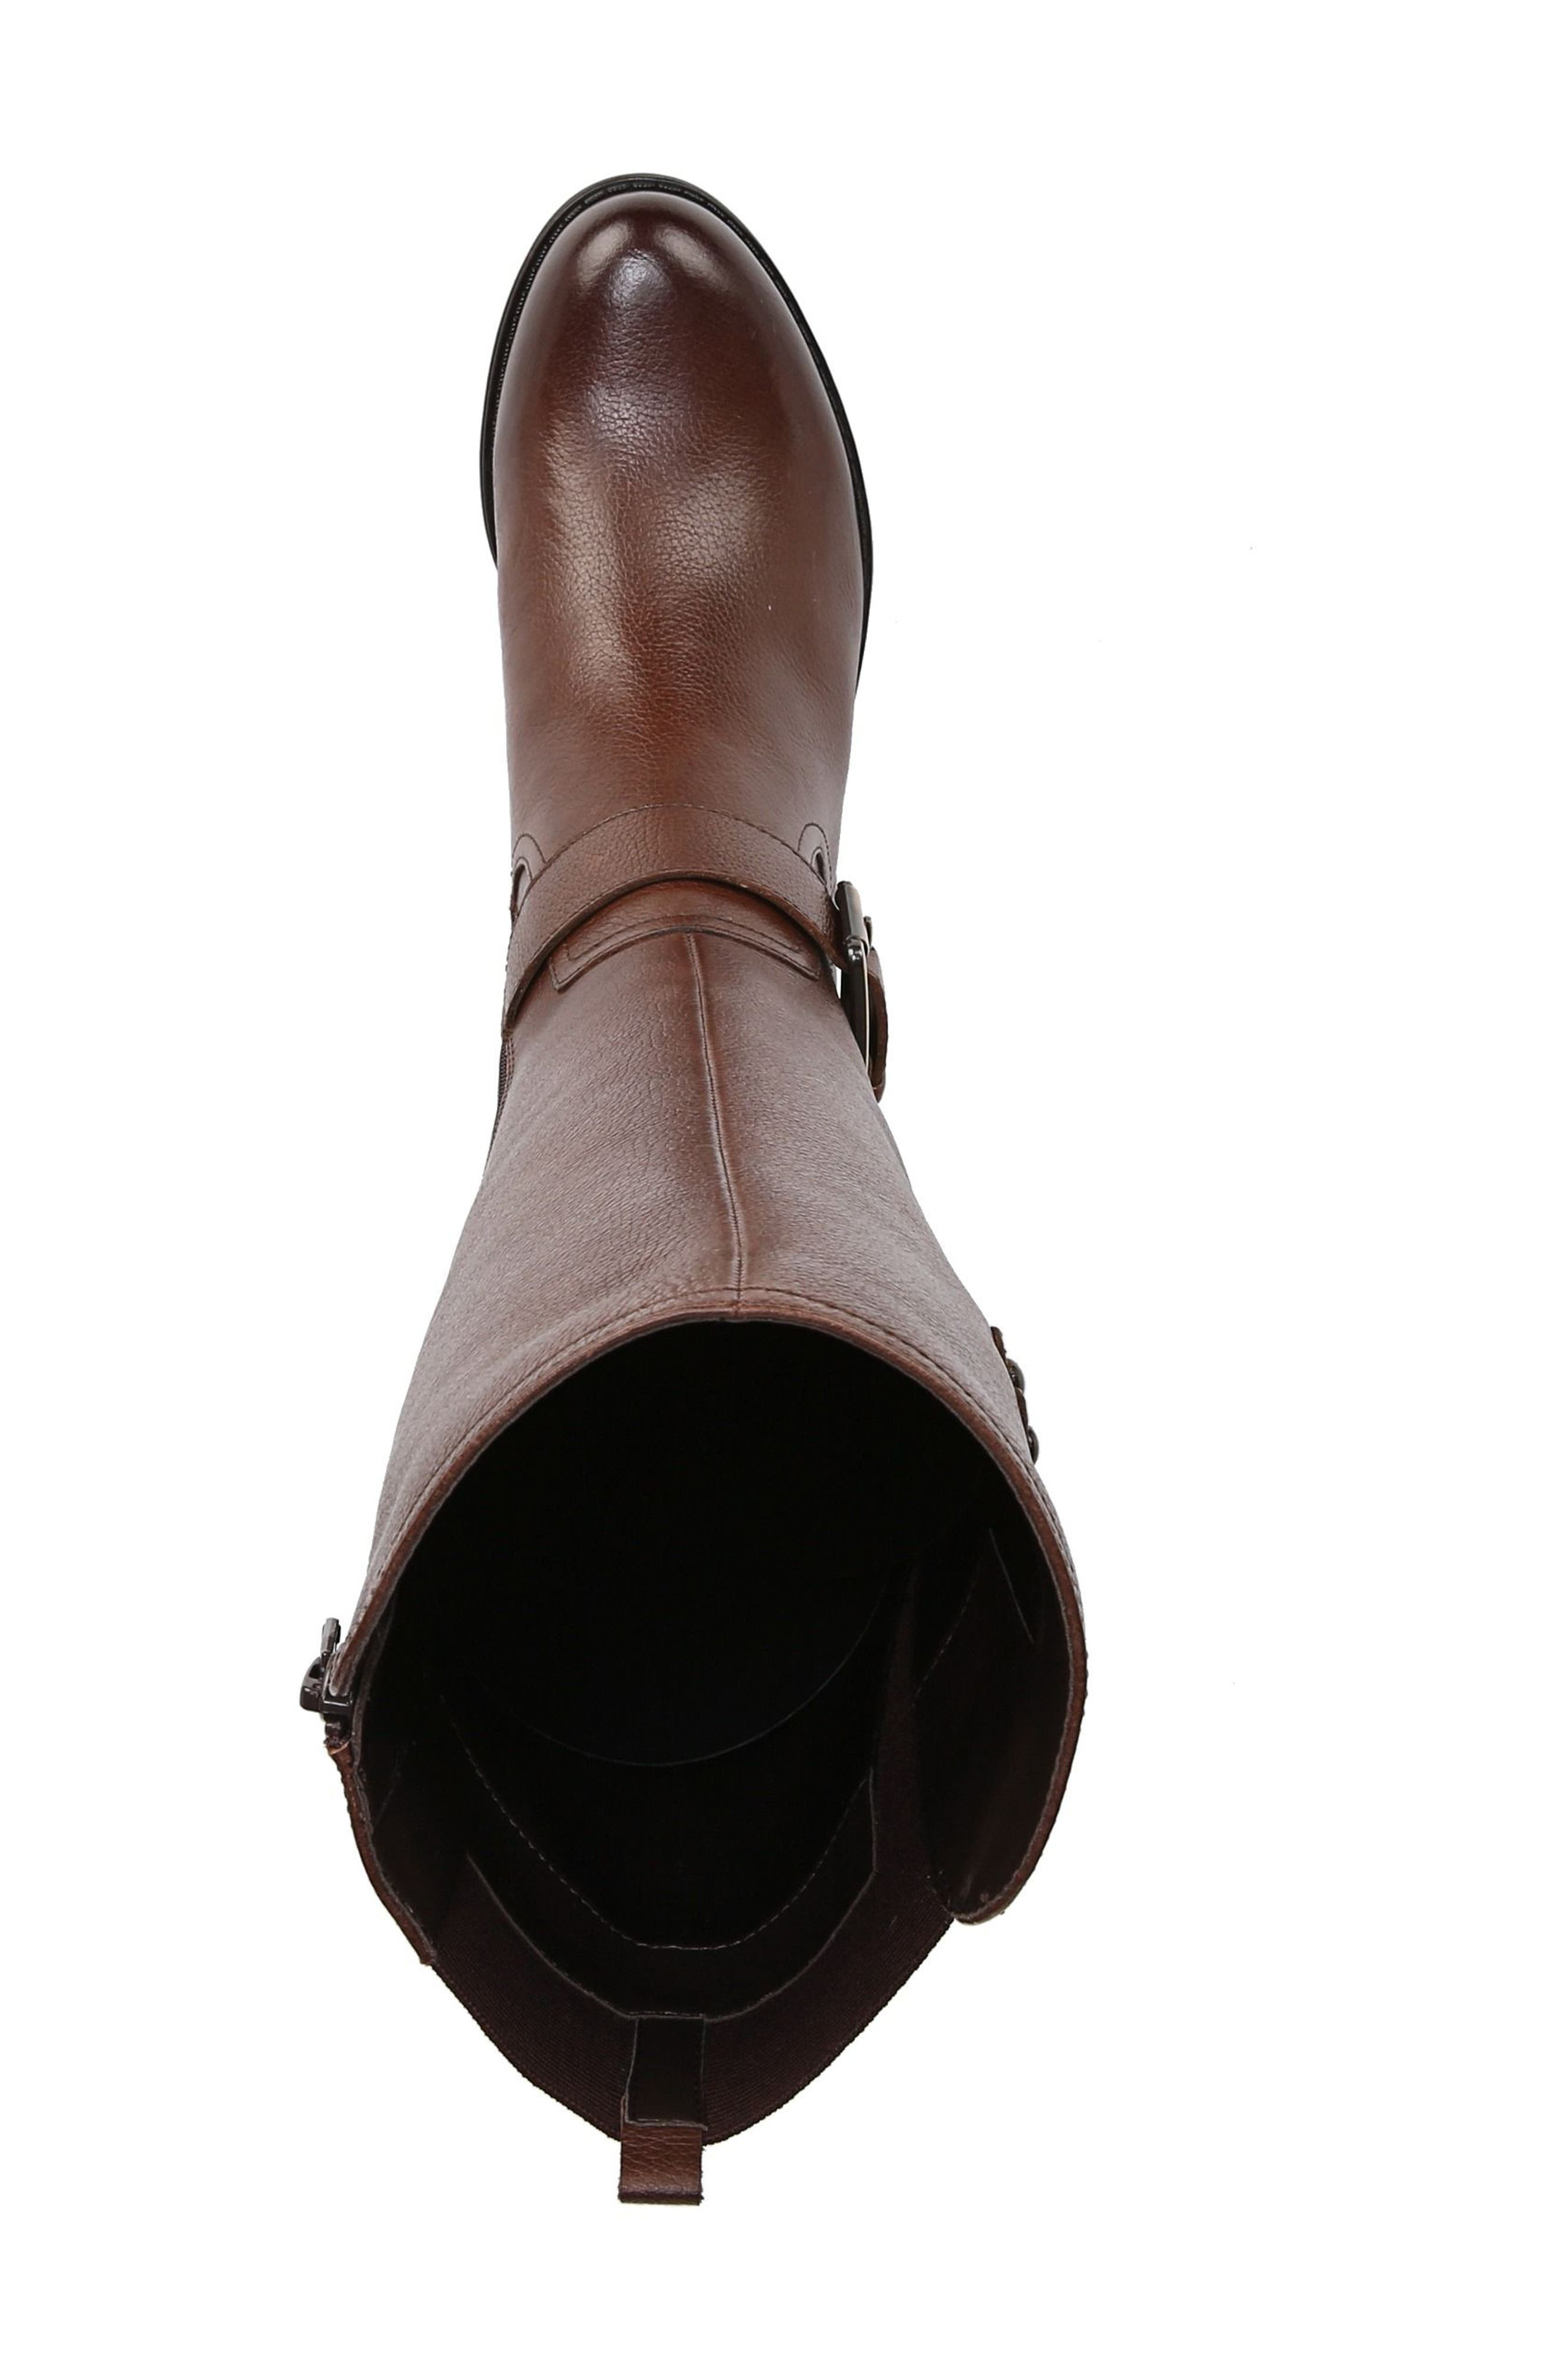 NATURALIZER, Jessie Knee High Riding Boot, Alternate thumbnail 5, color, CHOCOLATE LEATHER